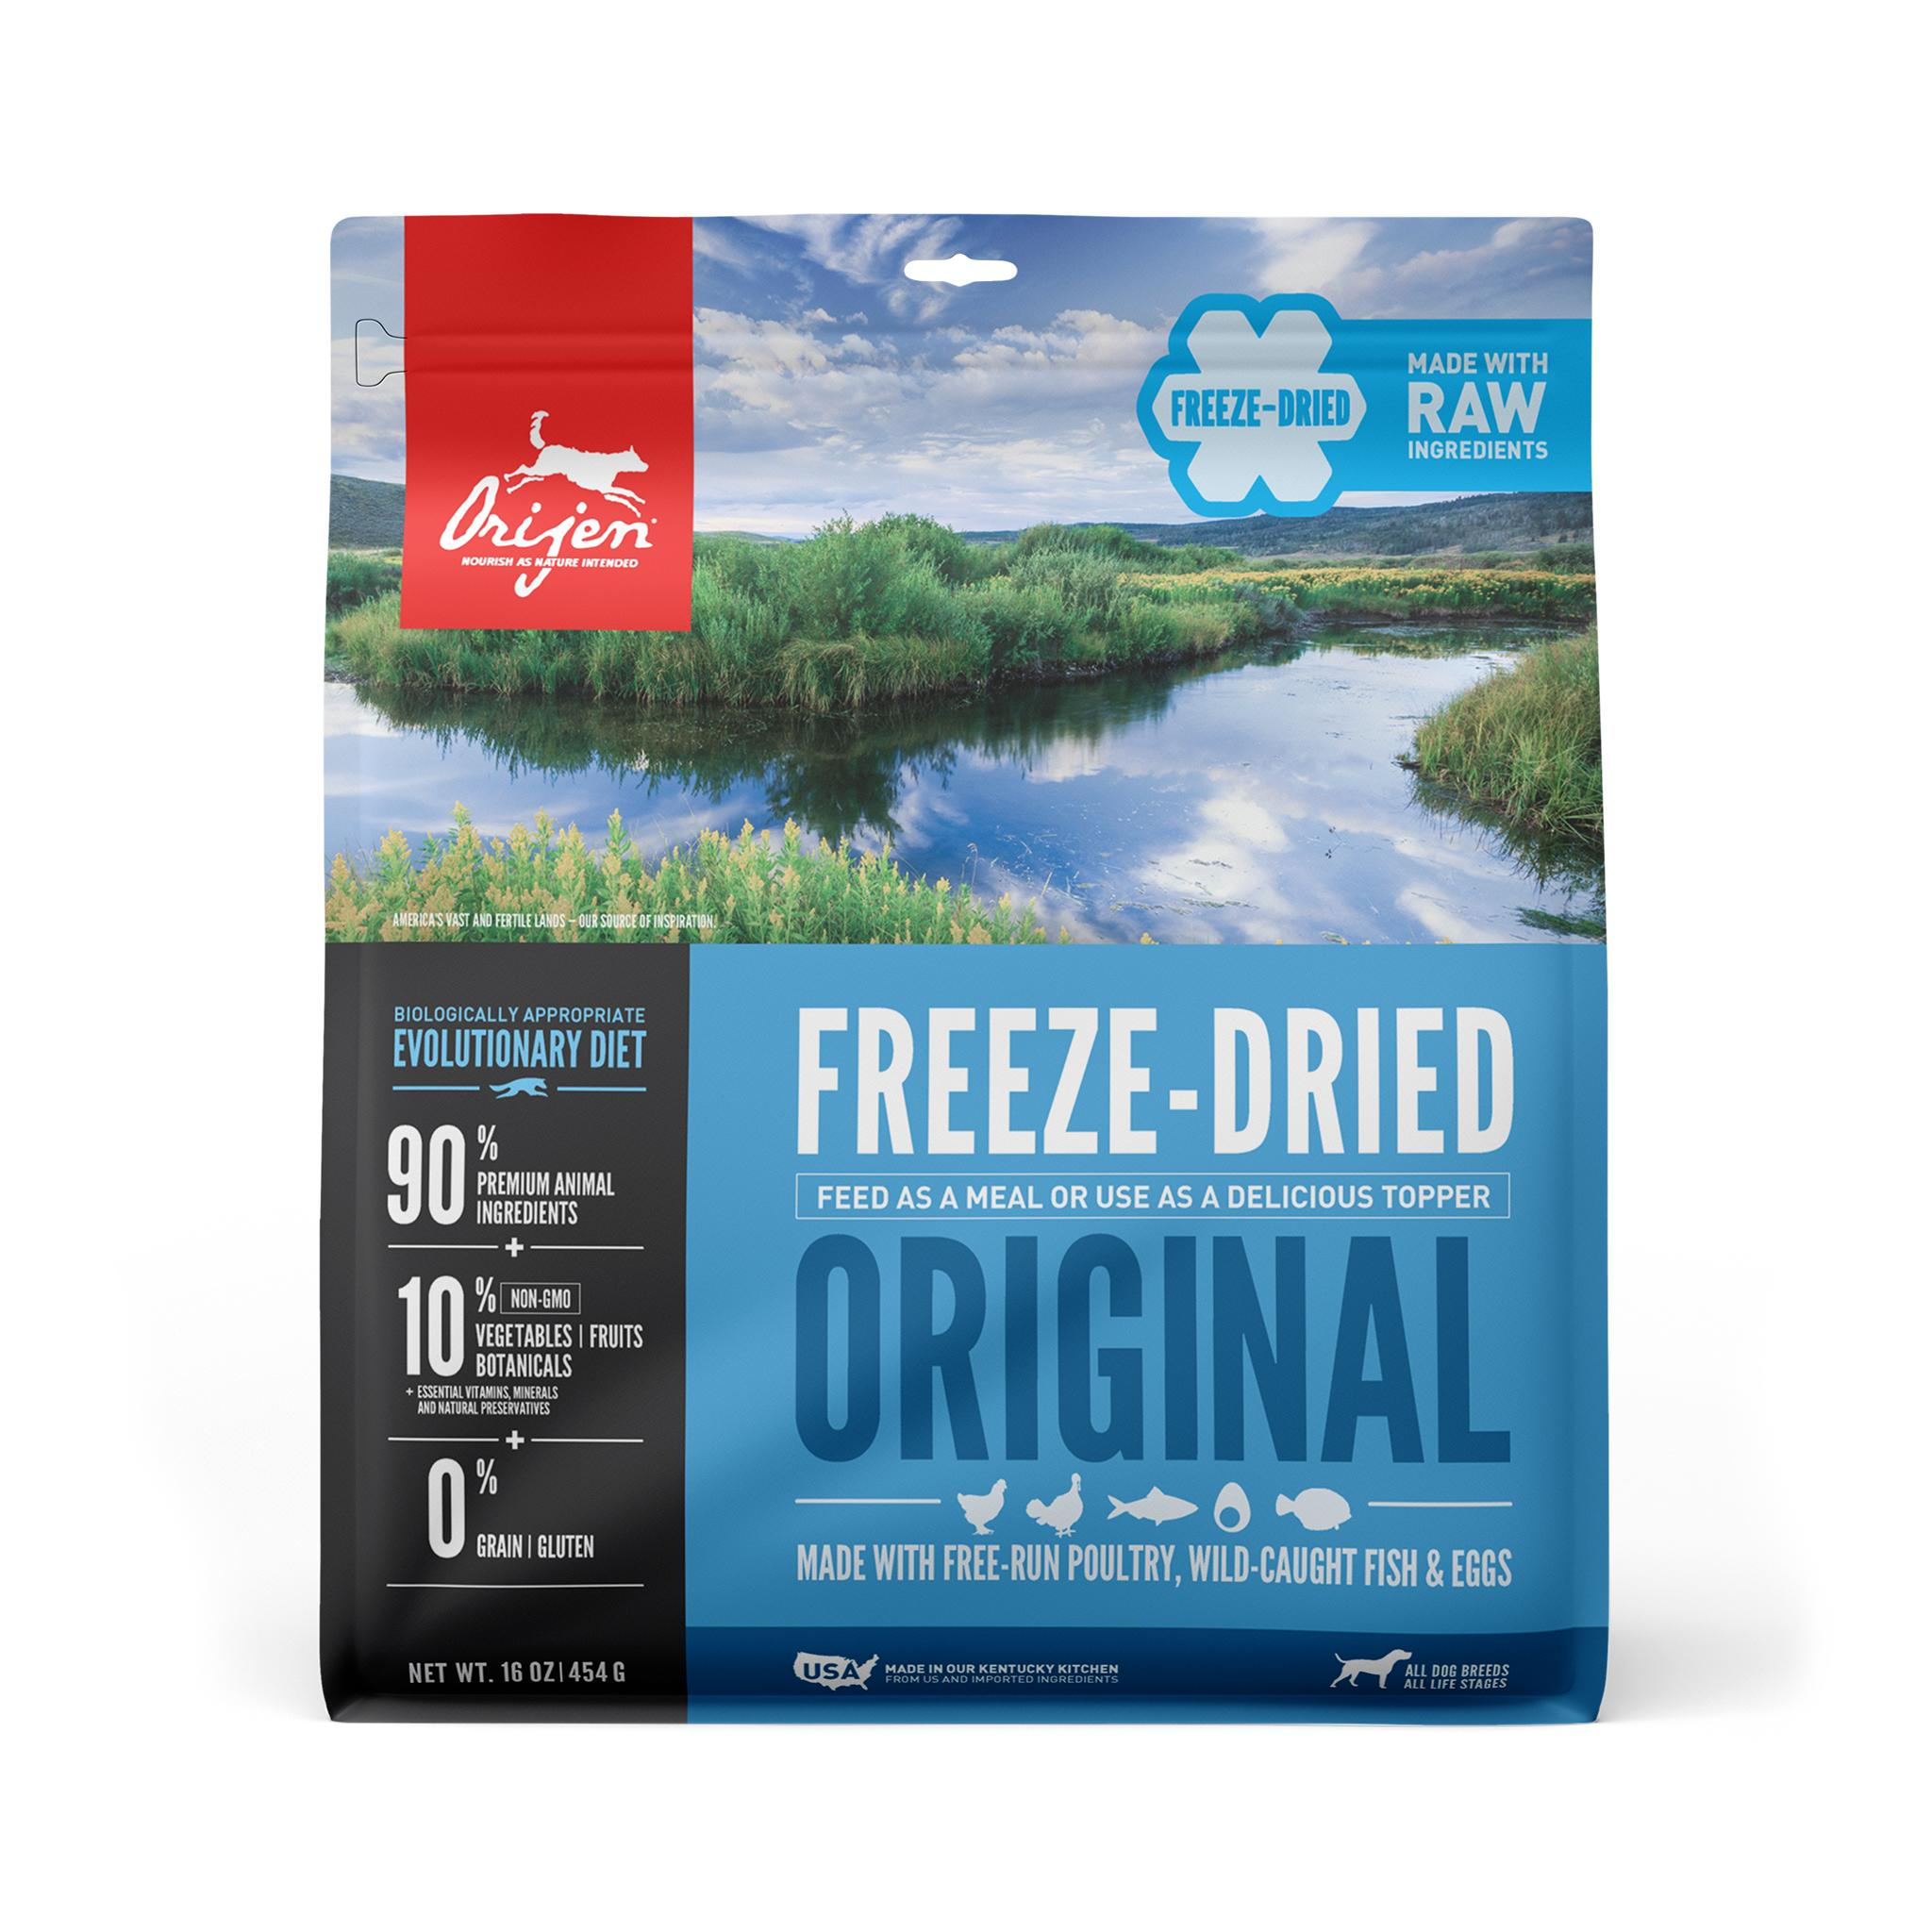 ORIJEN Original Grain-Free Freeze-Dried Dog Food, 16-oz